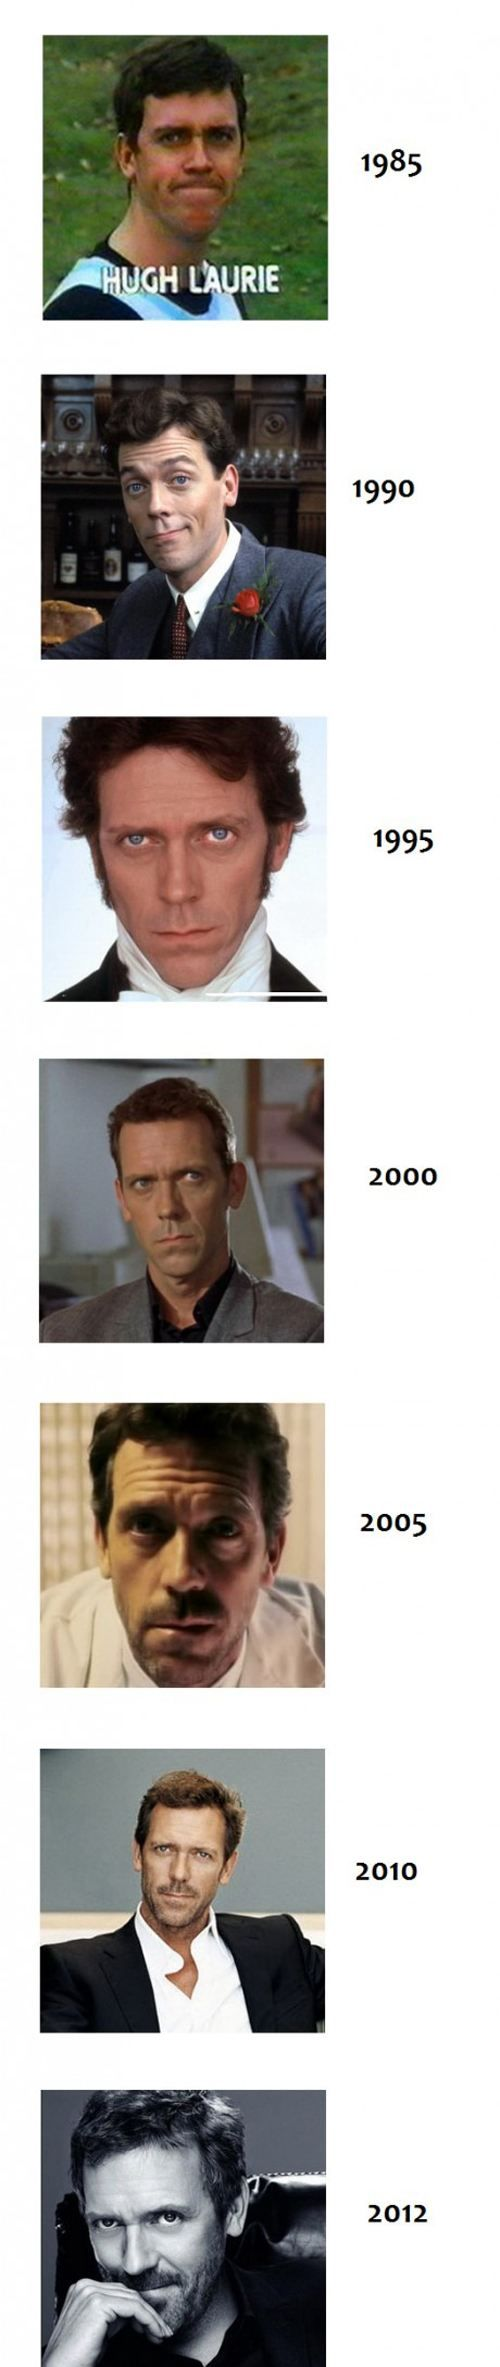 Hugh Laurie。Dr.HOUSE